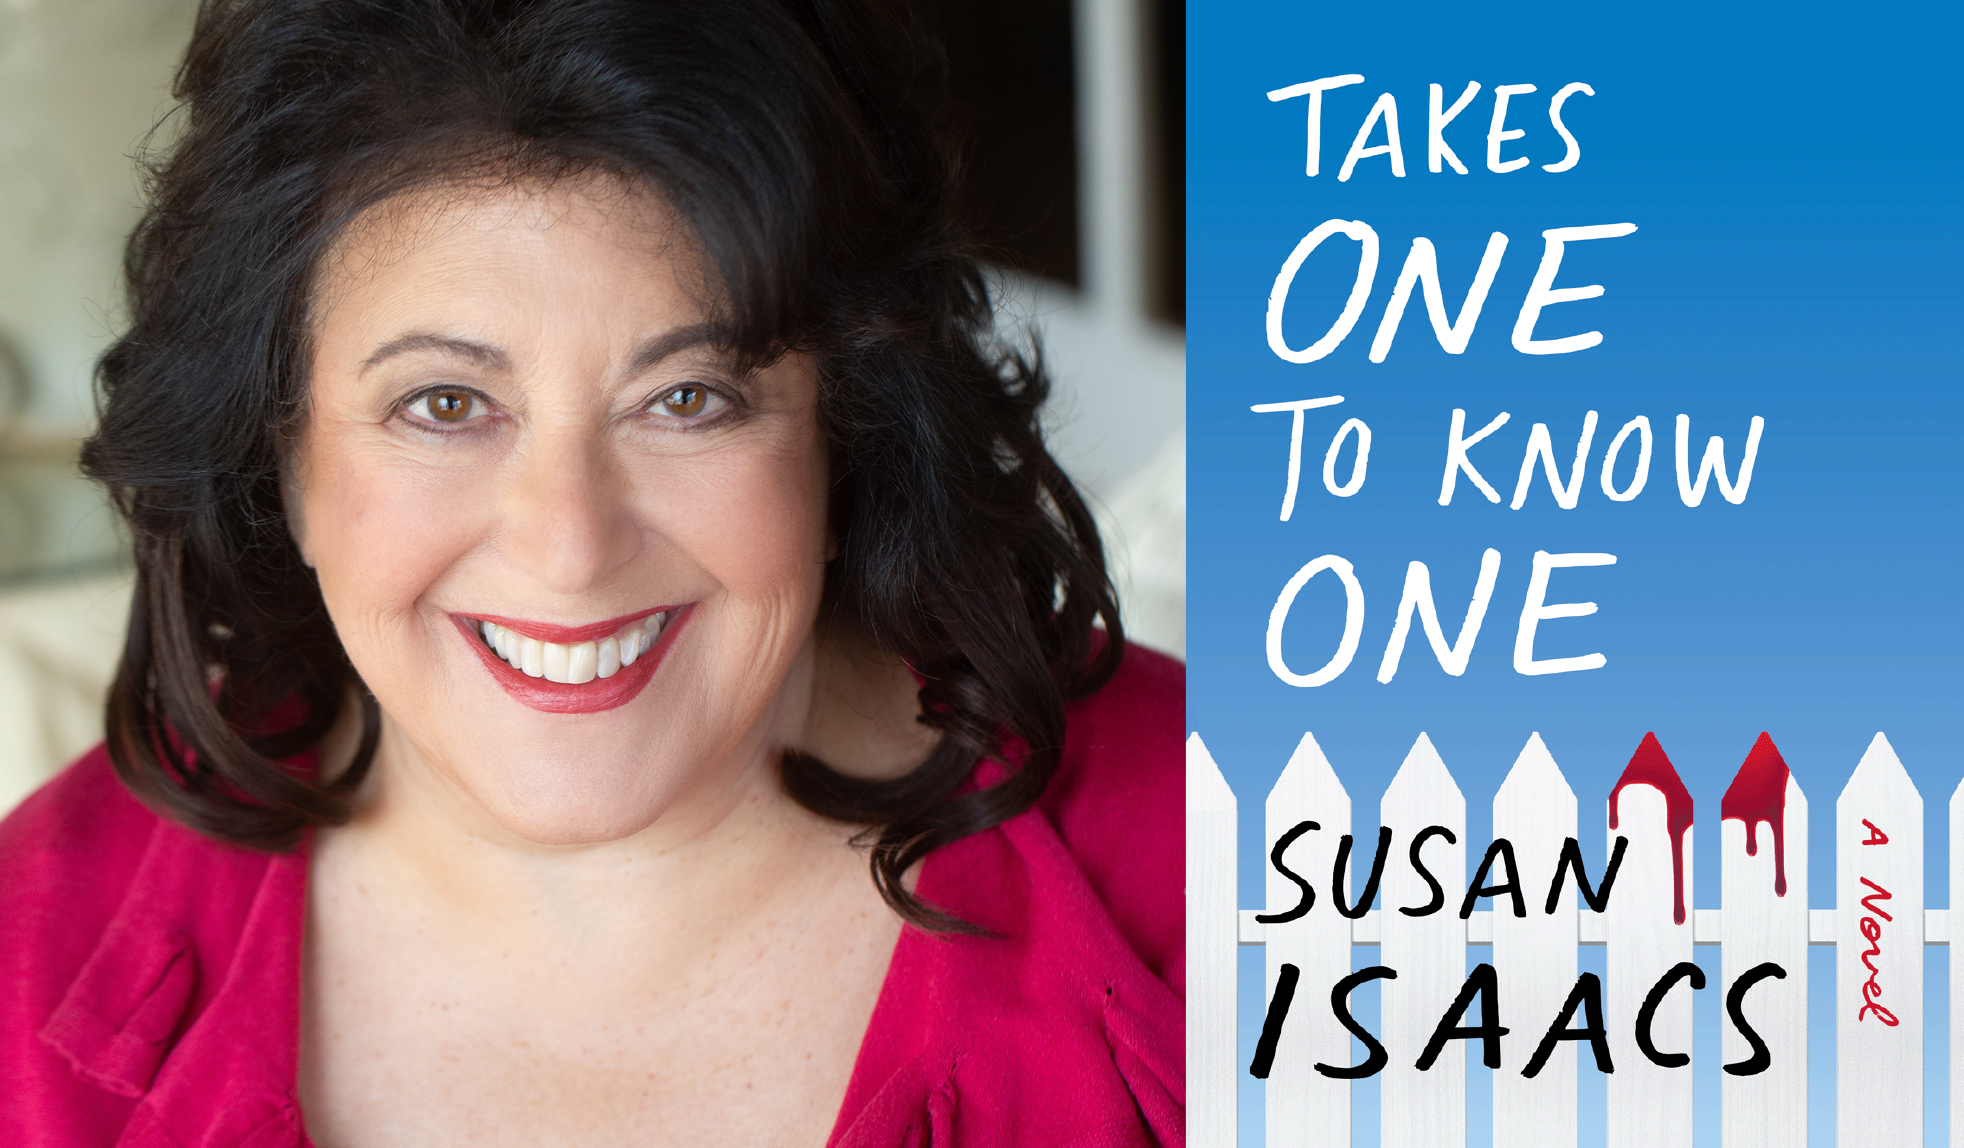 Susan Isaacs returns to Forest Hills Library on Saturday, October 26 to talk about her new novel.